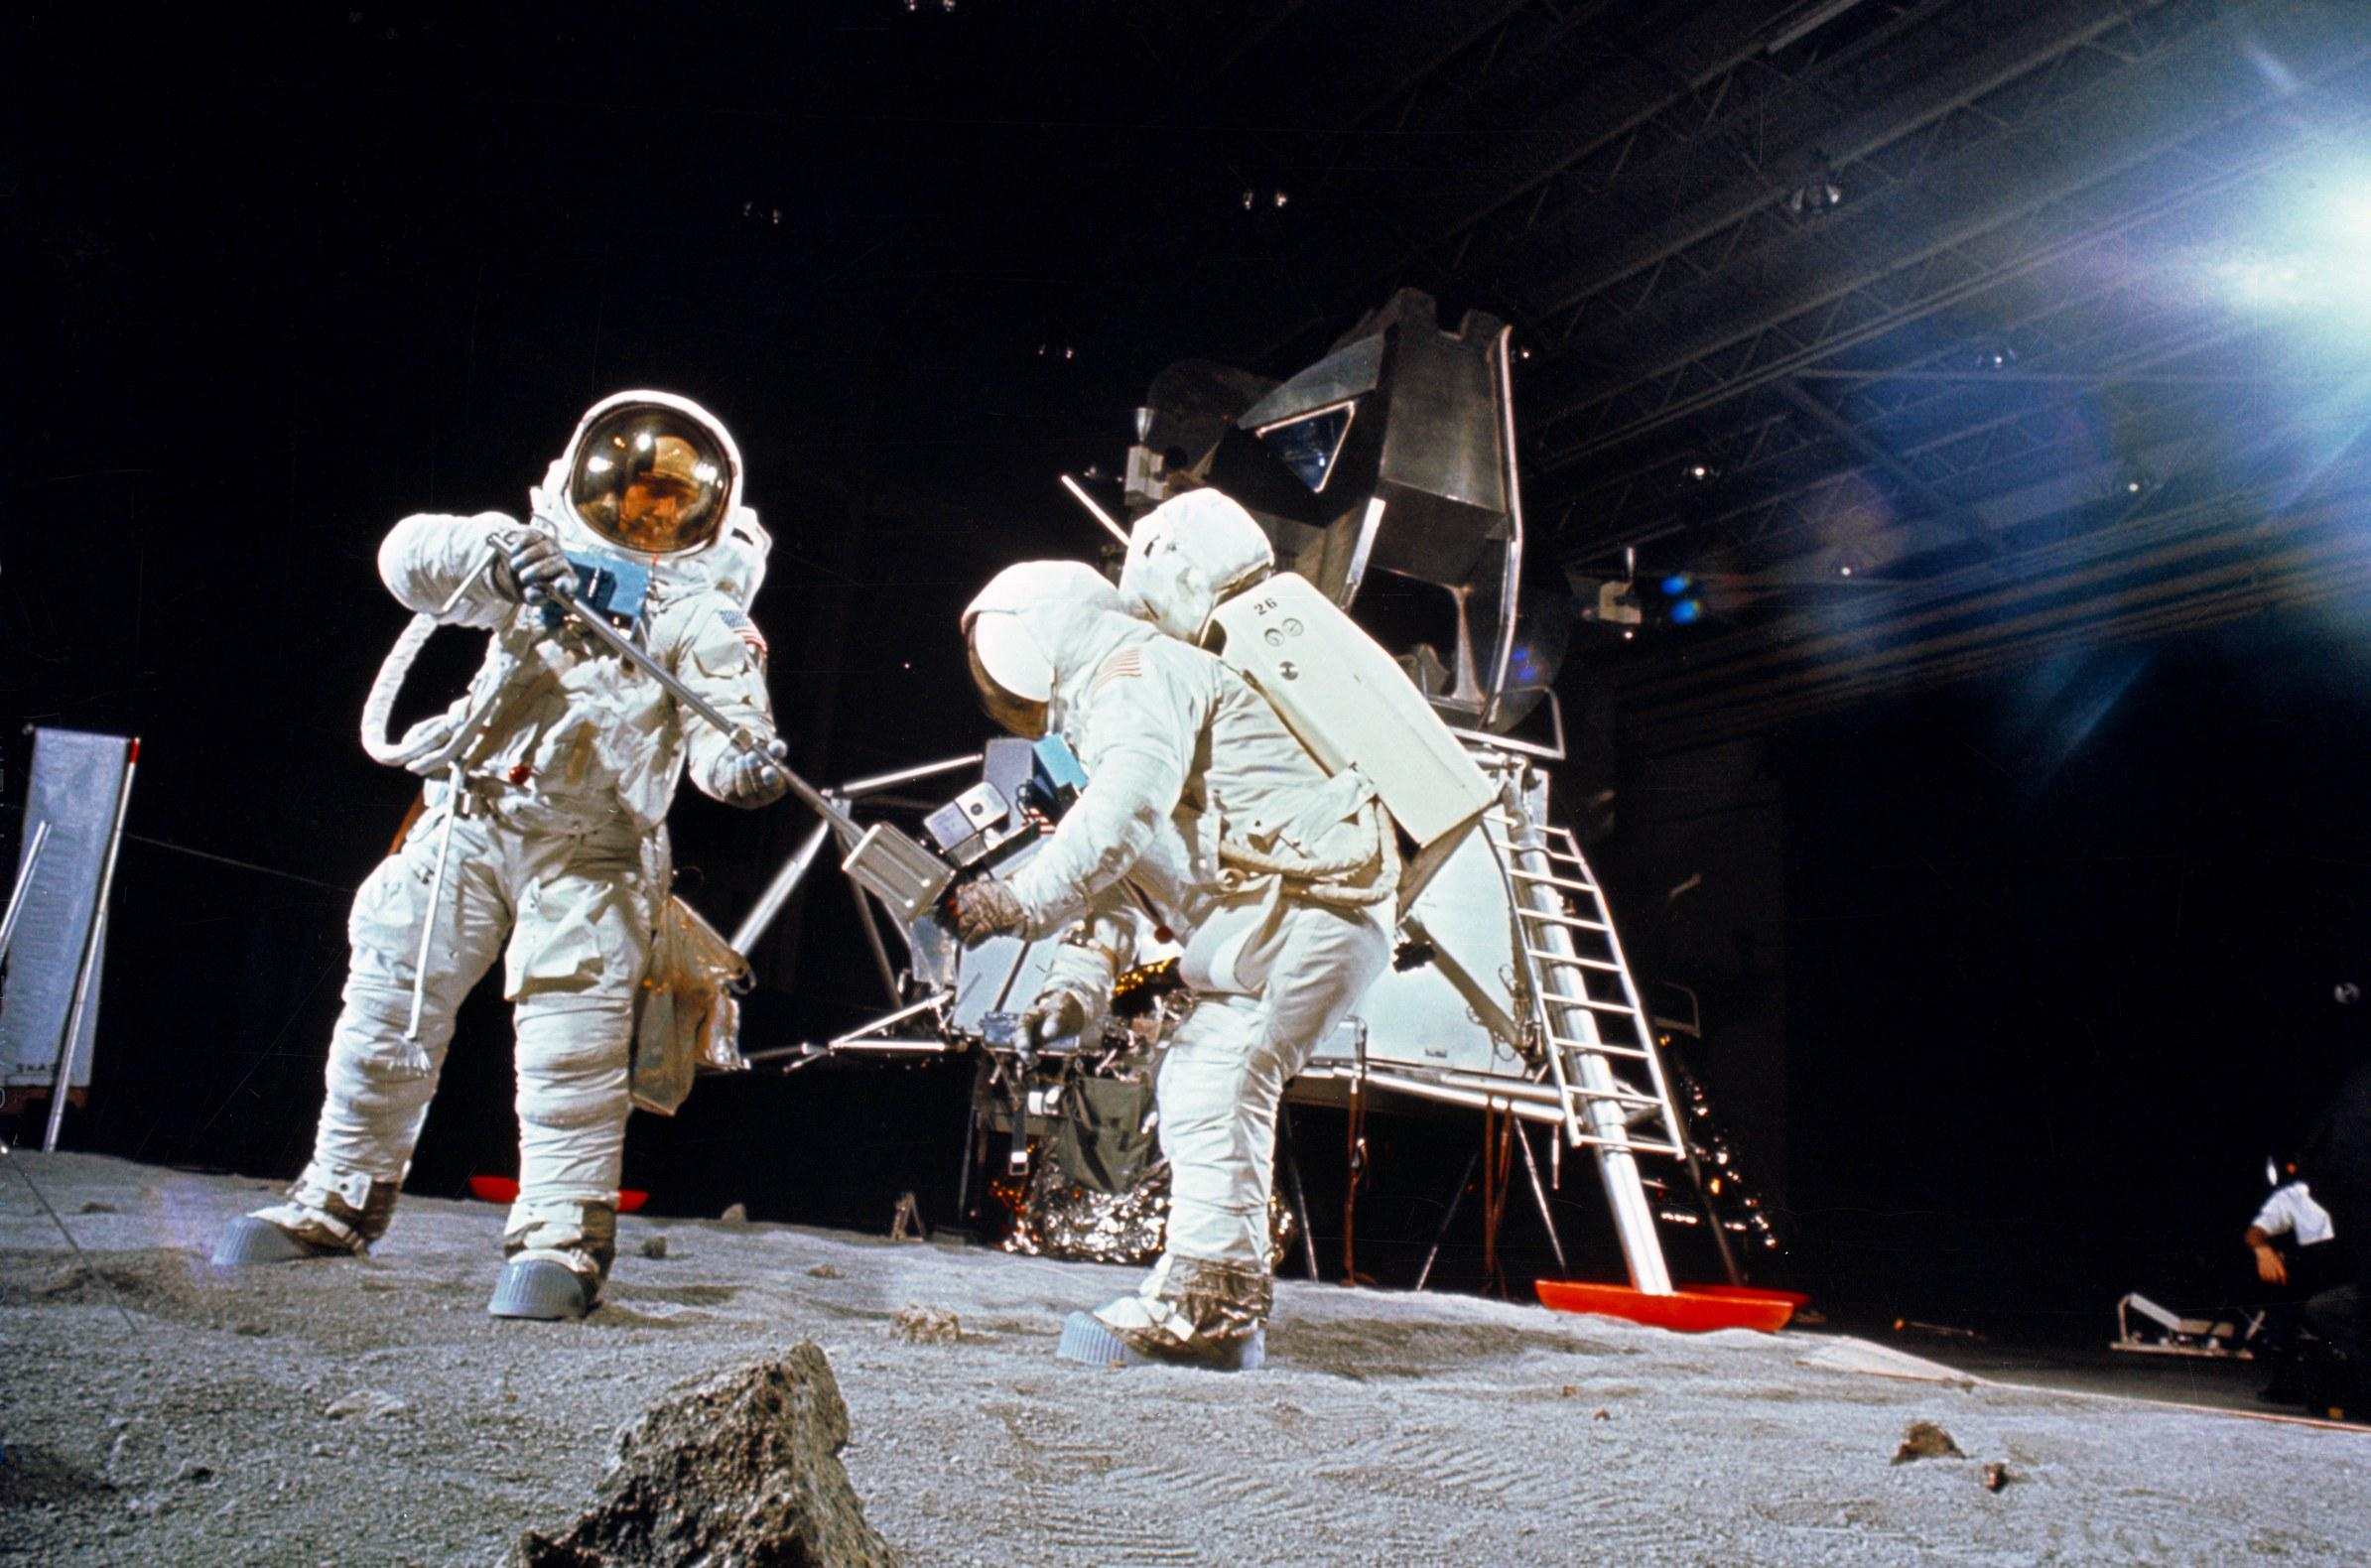 Armstrong and Aldrin practicing on fake moon dust under fake black sky